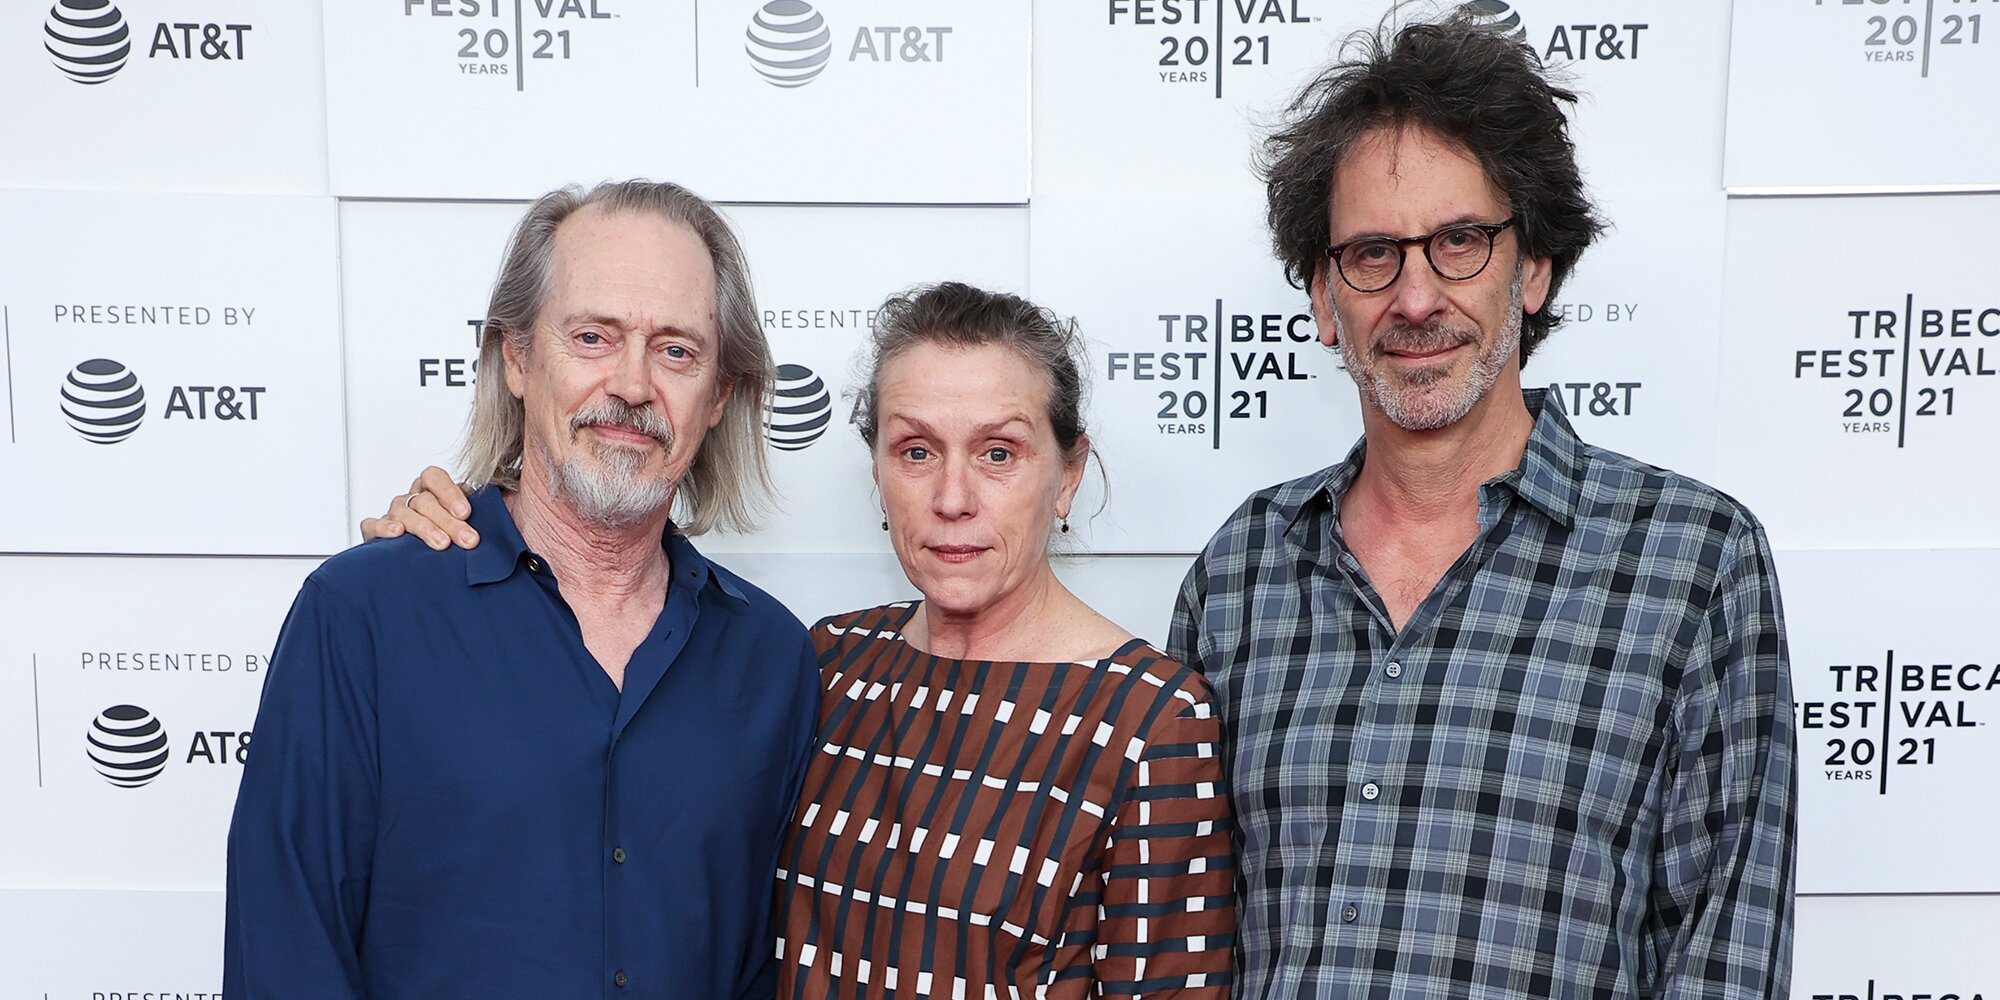 Frances McDormand, Steve Buscemi, and Joel Coen reunite to reflect on 25 years of 'Fargo'